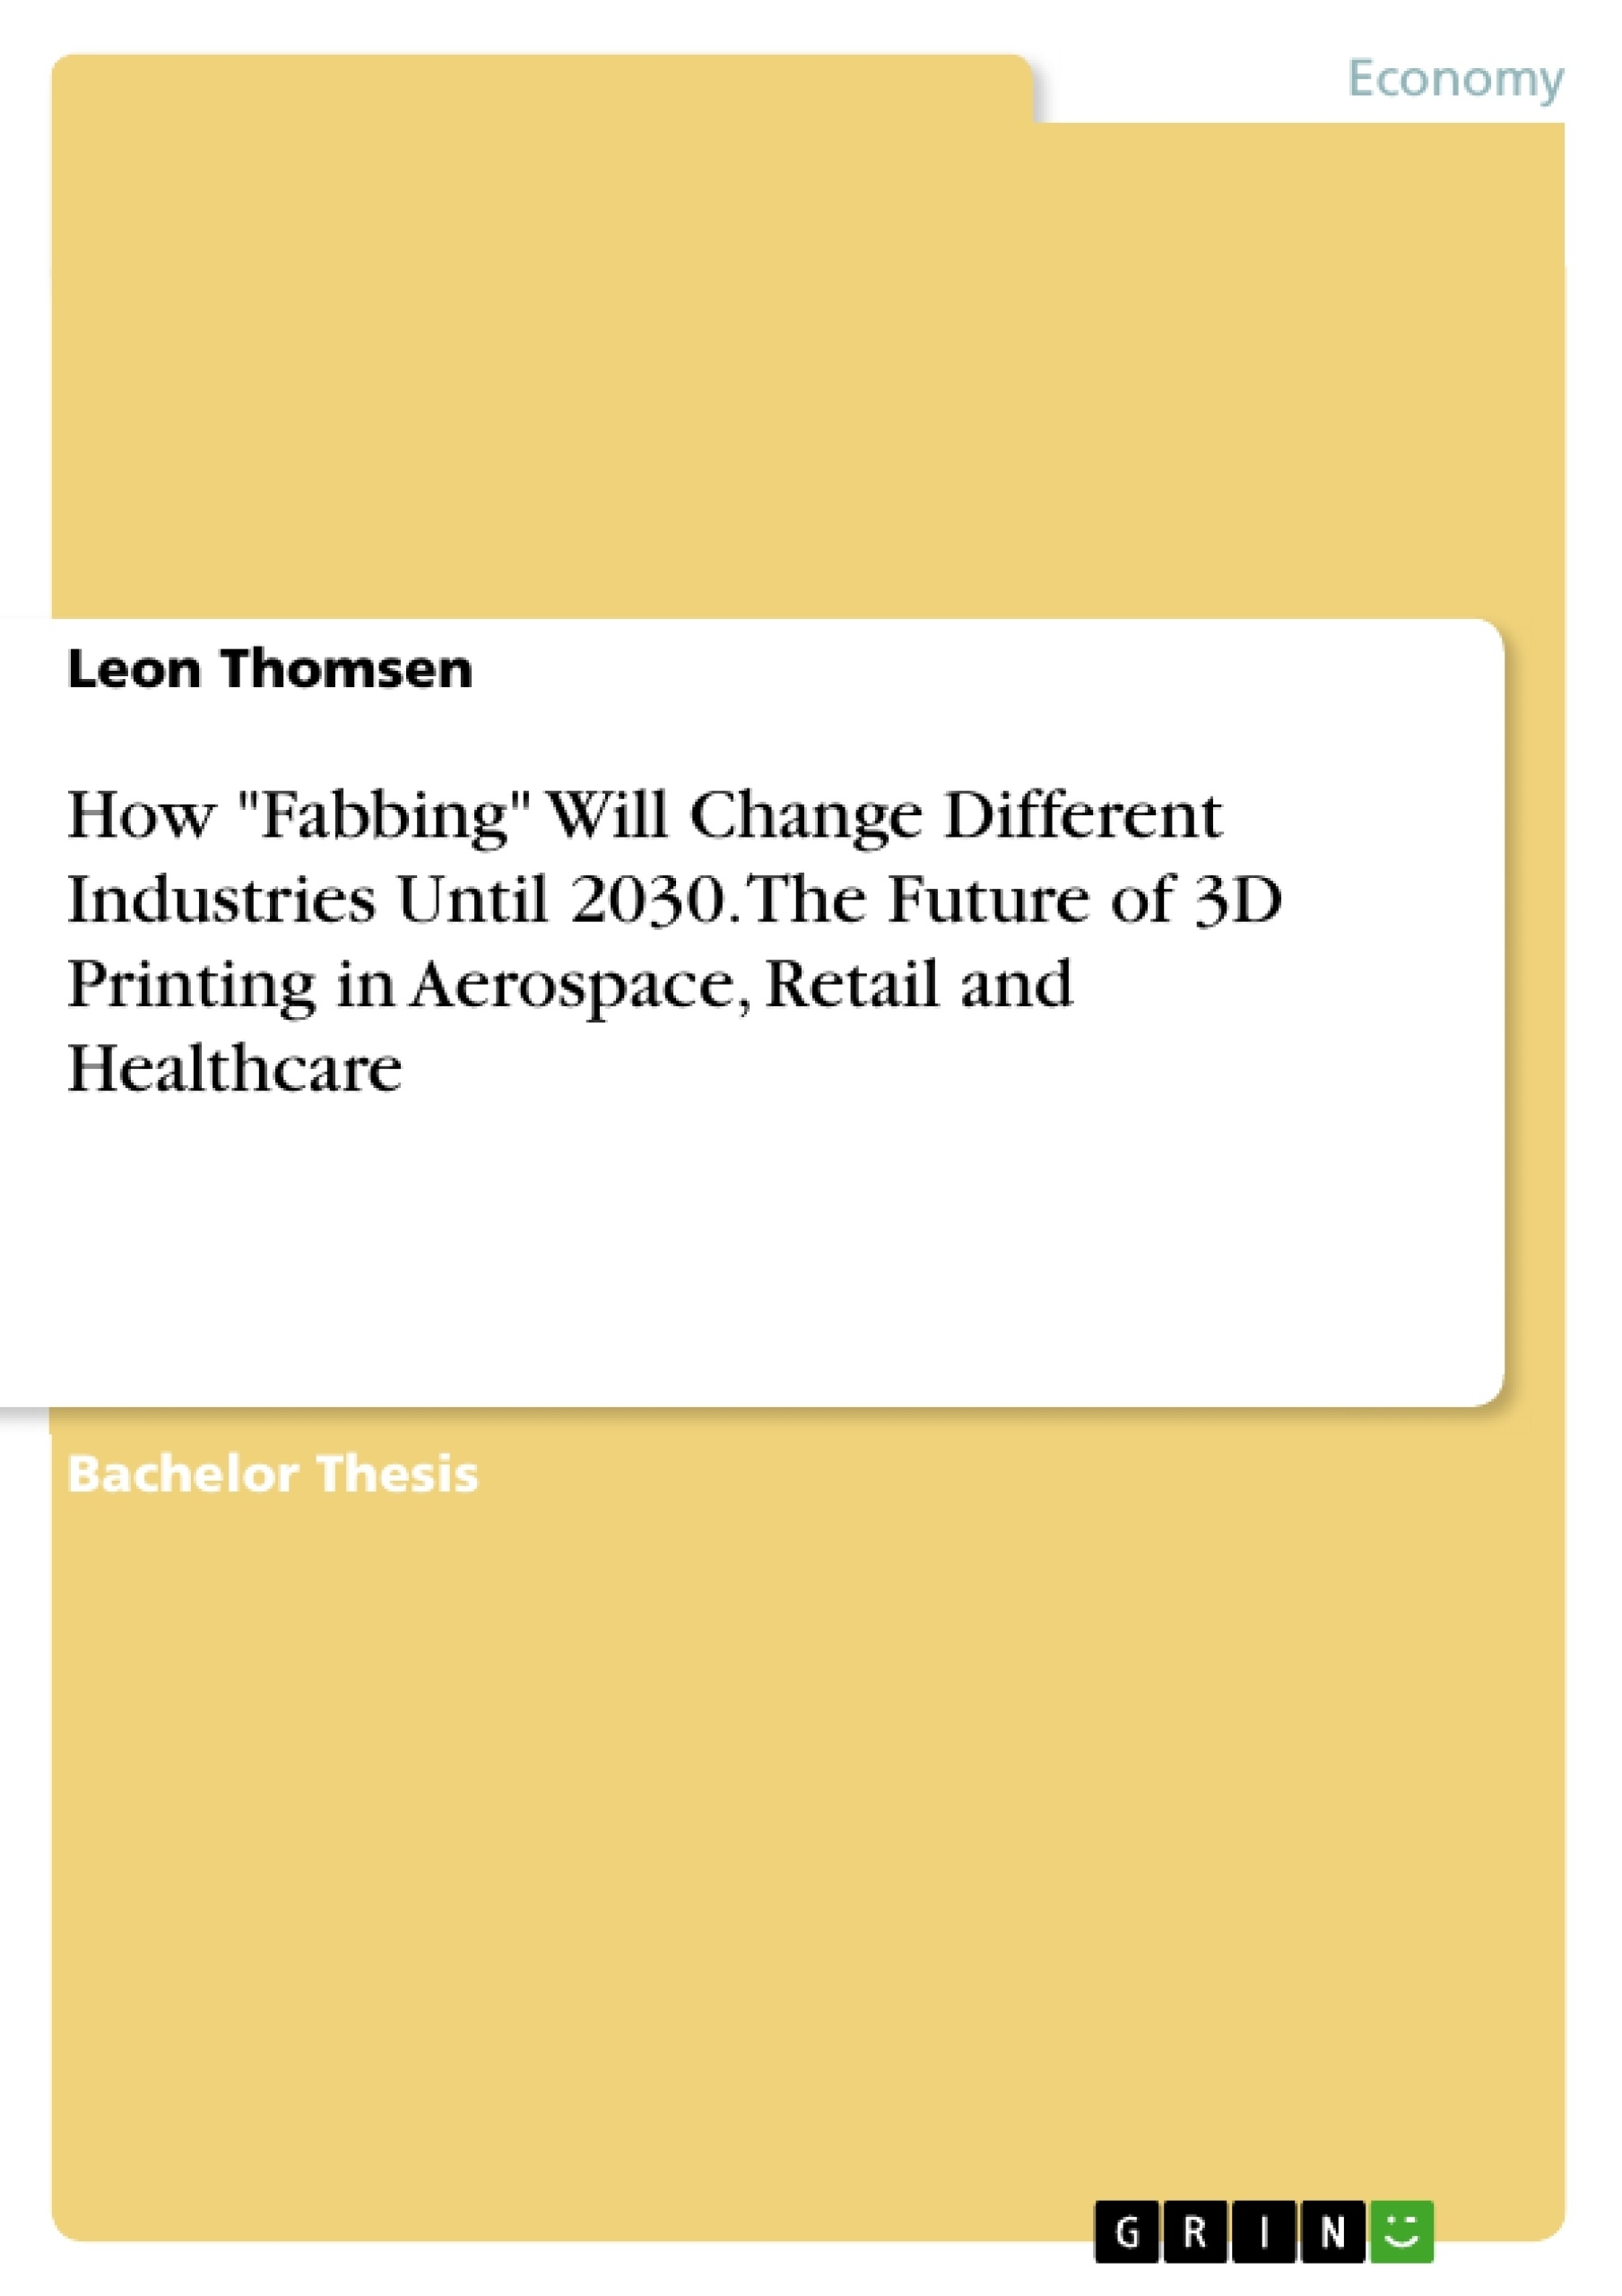 """Title: How """"Fabbing"""" Will Change Different Industries Until 2030. The Future of 3D Printing in Aerospace, Retail and Healthcare"""